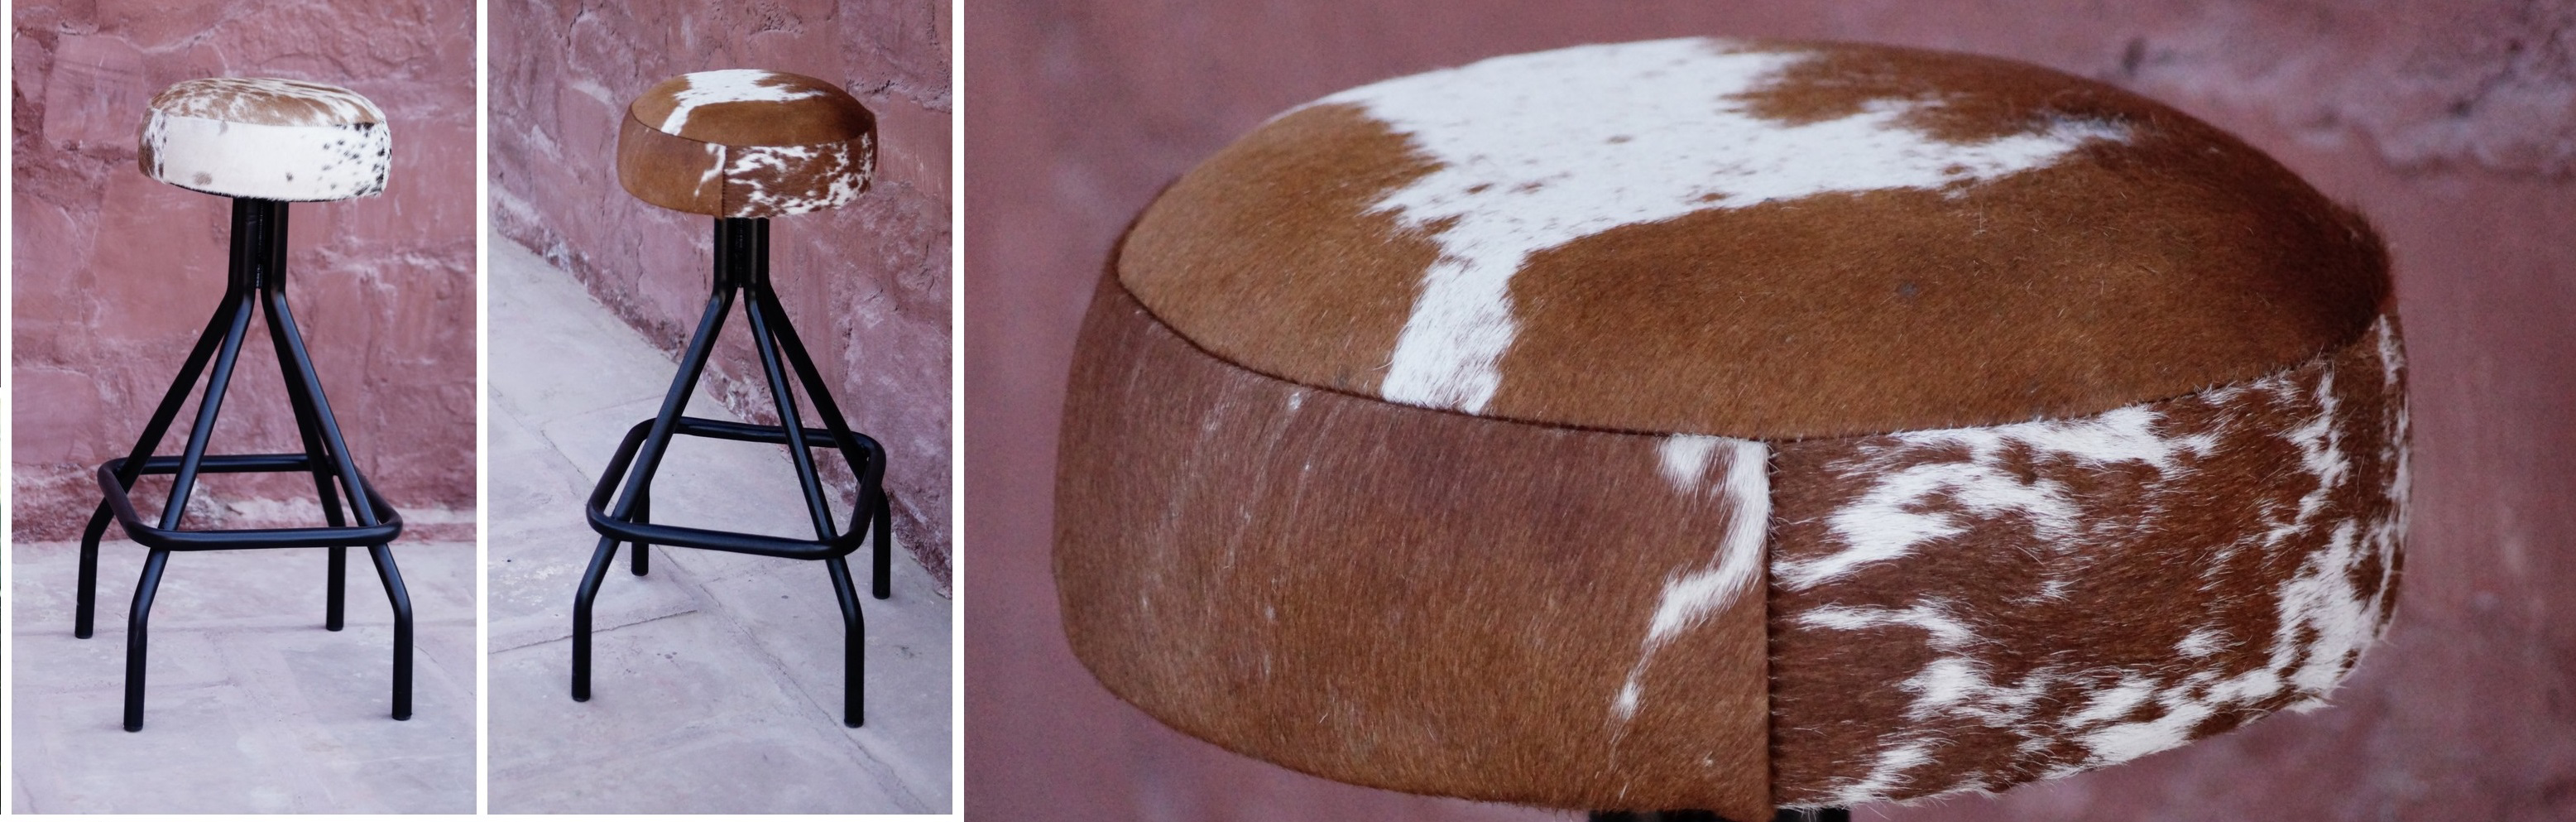 Arizona Cow Hide Stool Tan and White